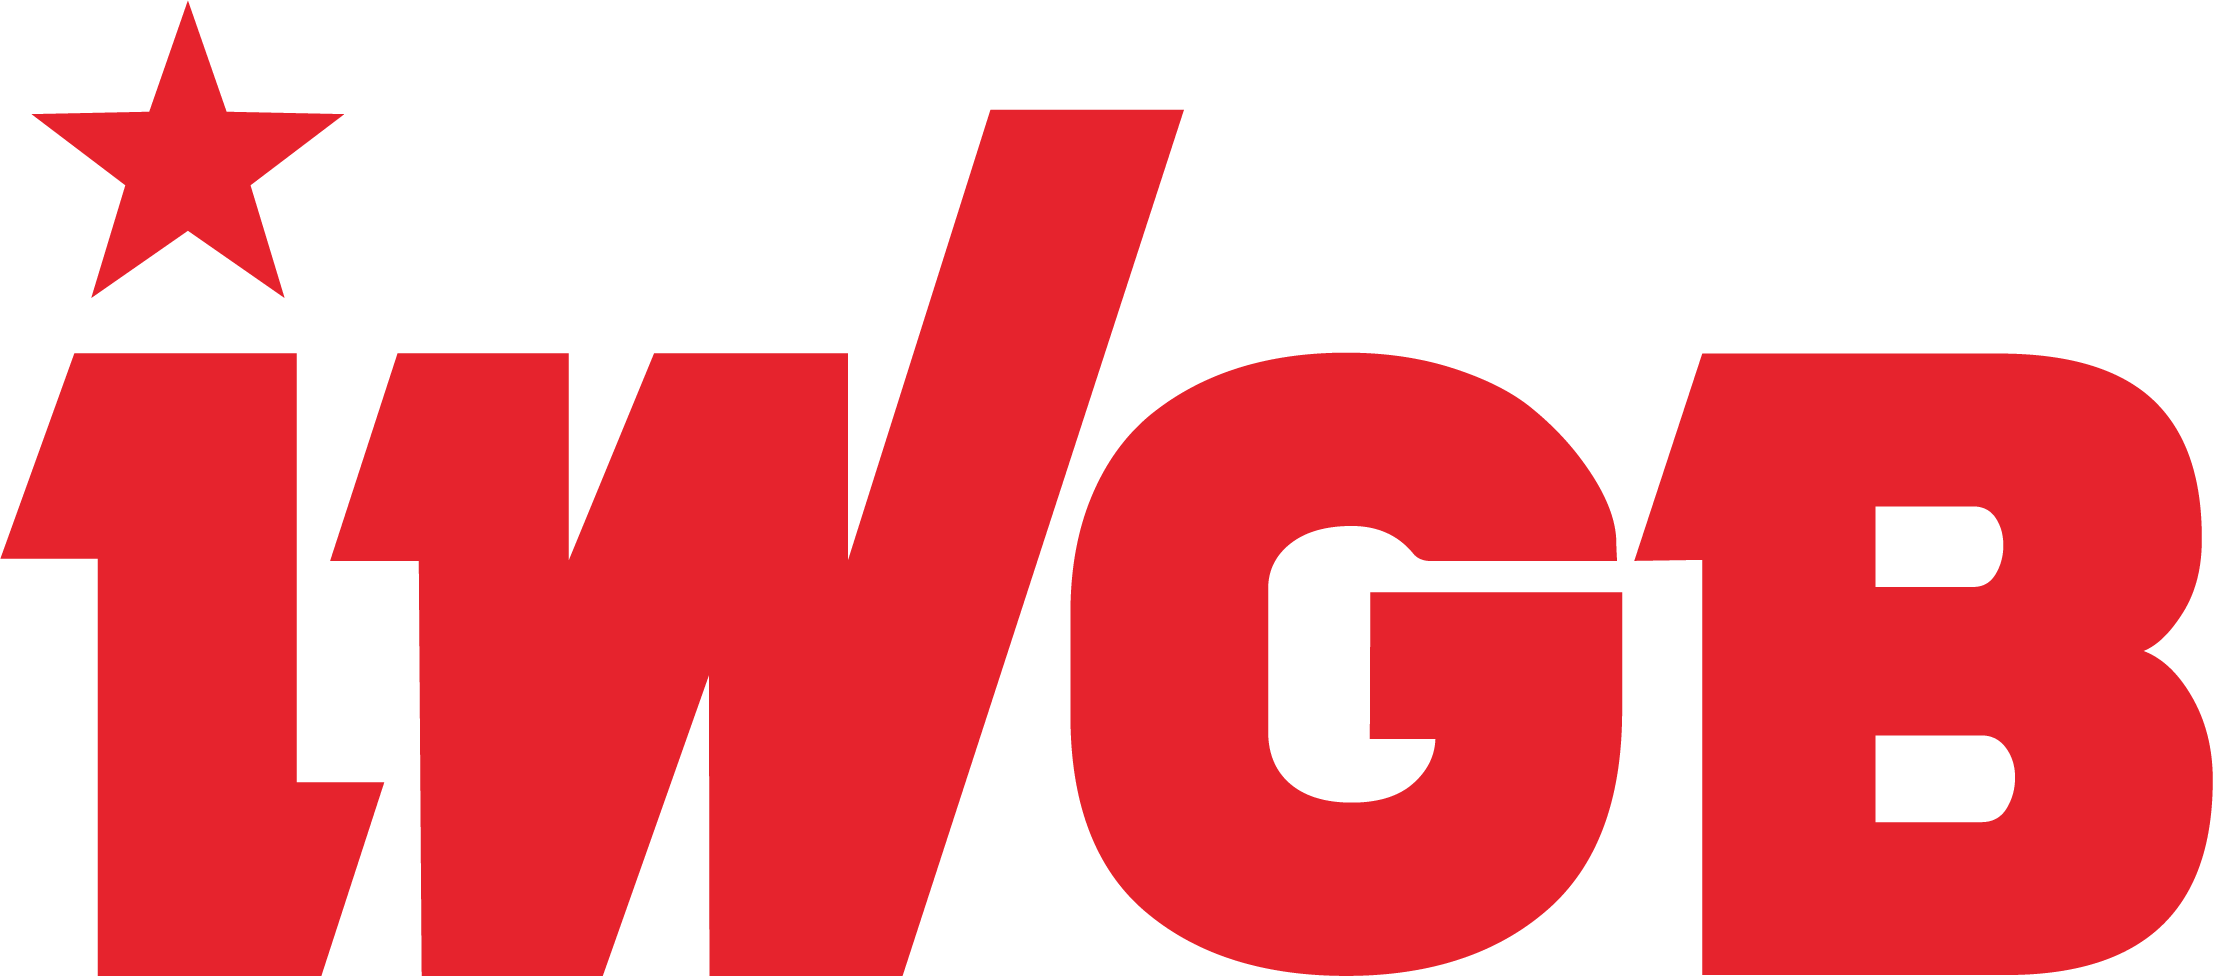 Independent Workers Union of Great Britain logo